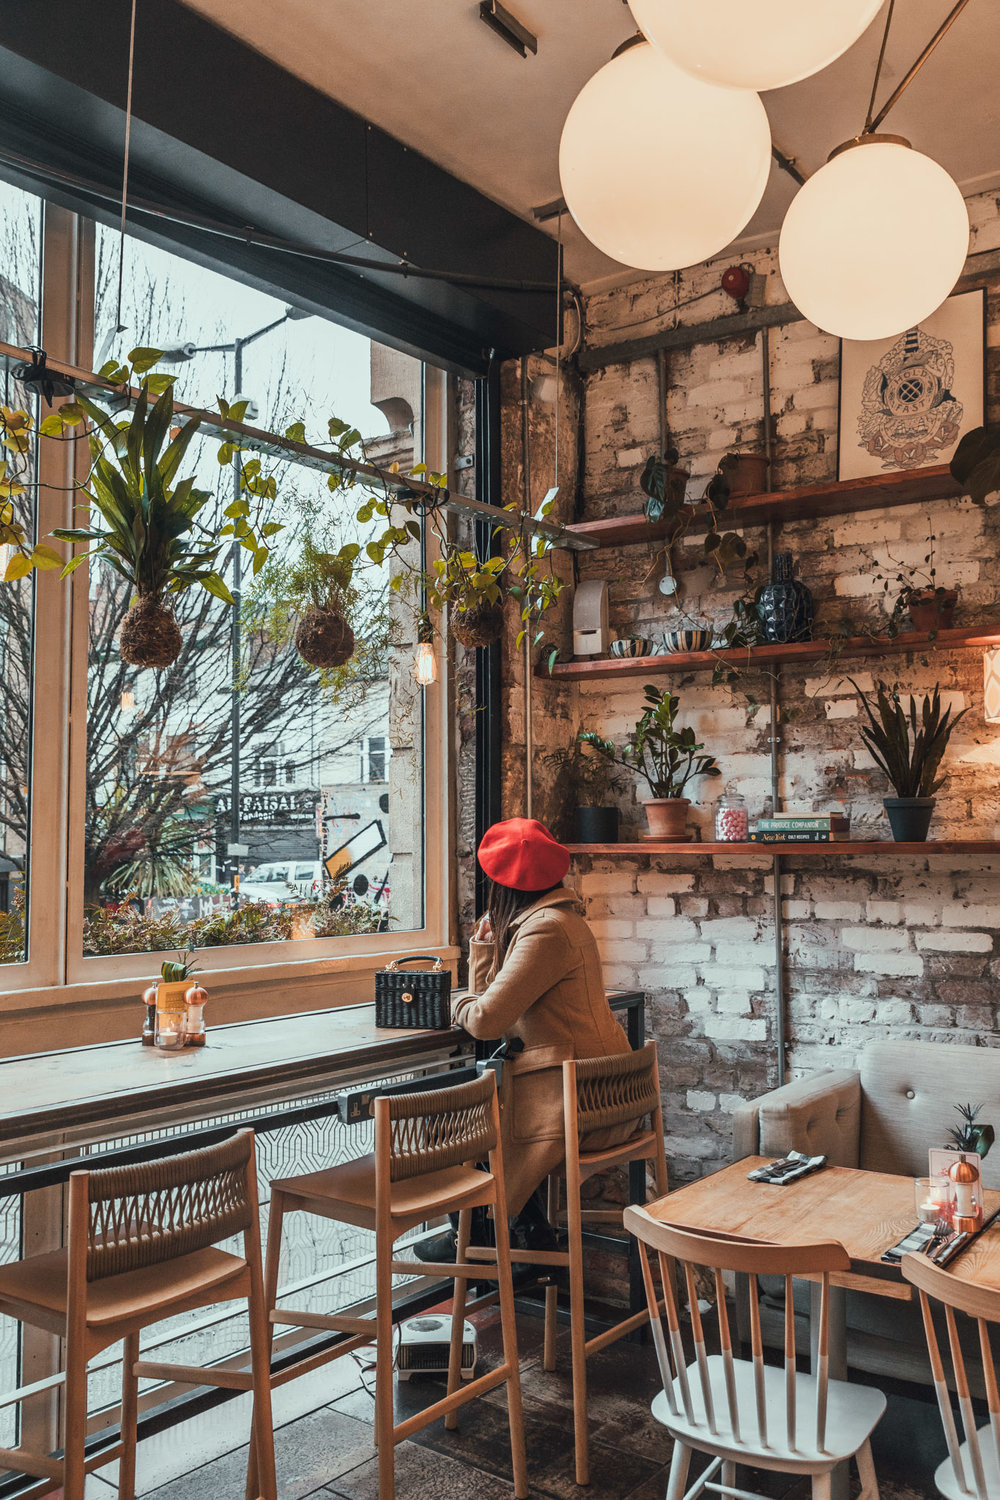 The succulent-filled interior of Evelyn's Cafe Bar in Manchester // 11 INSTAGRAM-WORTHY PHOTO SPOTS IN MANCHESTER, ENGLAND // www.readysetjetset.net #readysetjetset #manchester #england #uk #unitedkingdom #cityguide #travel